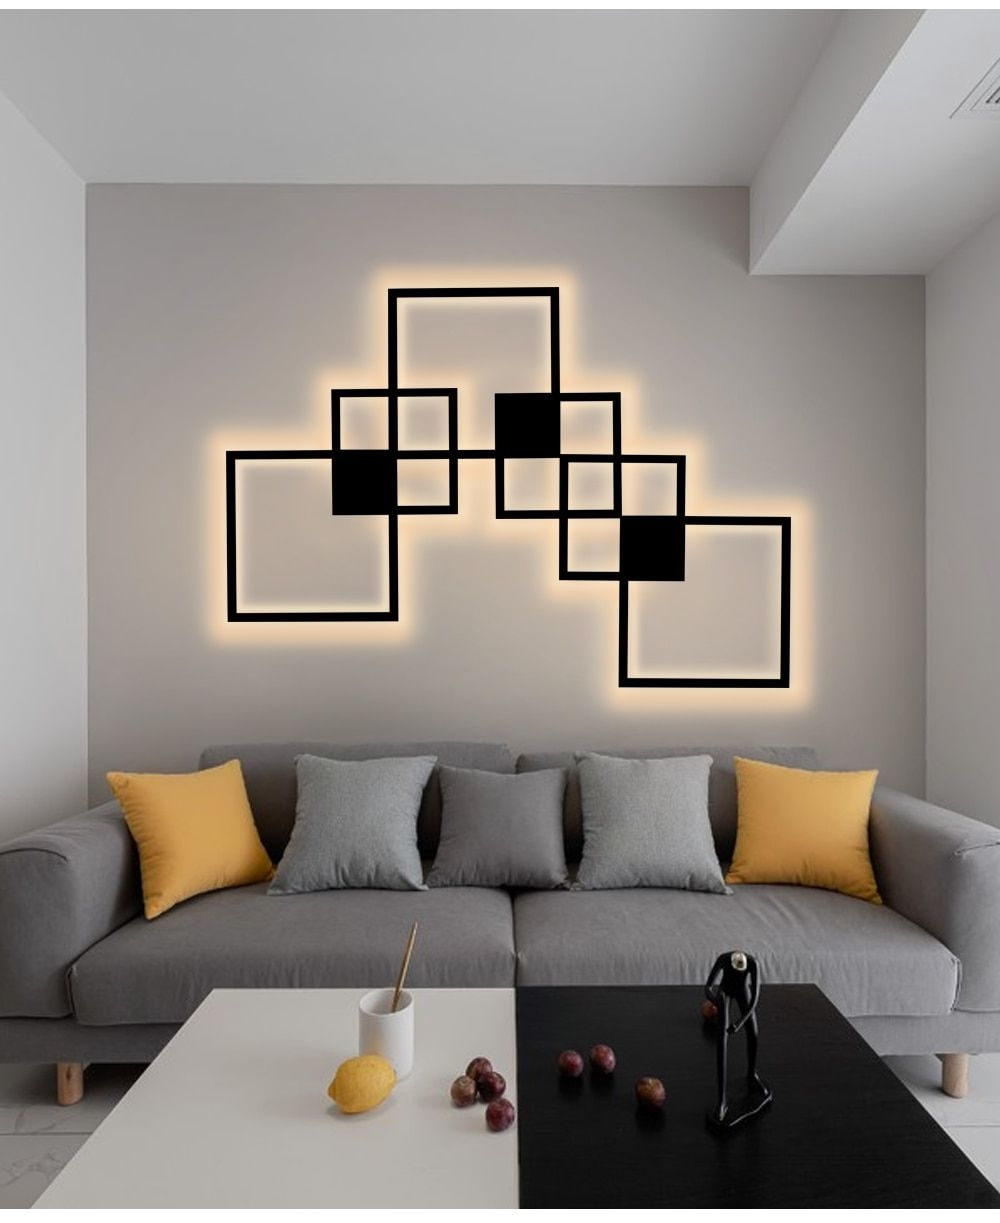 Prodigious Wall Art Designs for Living Room On Lovely Diy Wall Decoration Panel Lamp nordic Garner On Wall Art Designs for Living Room